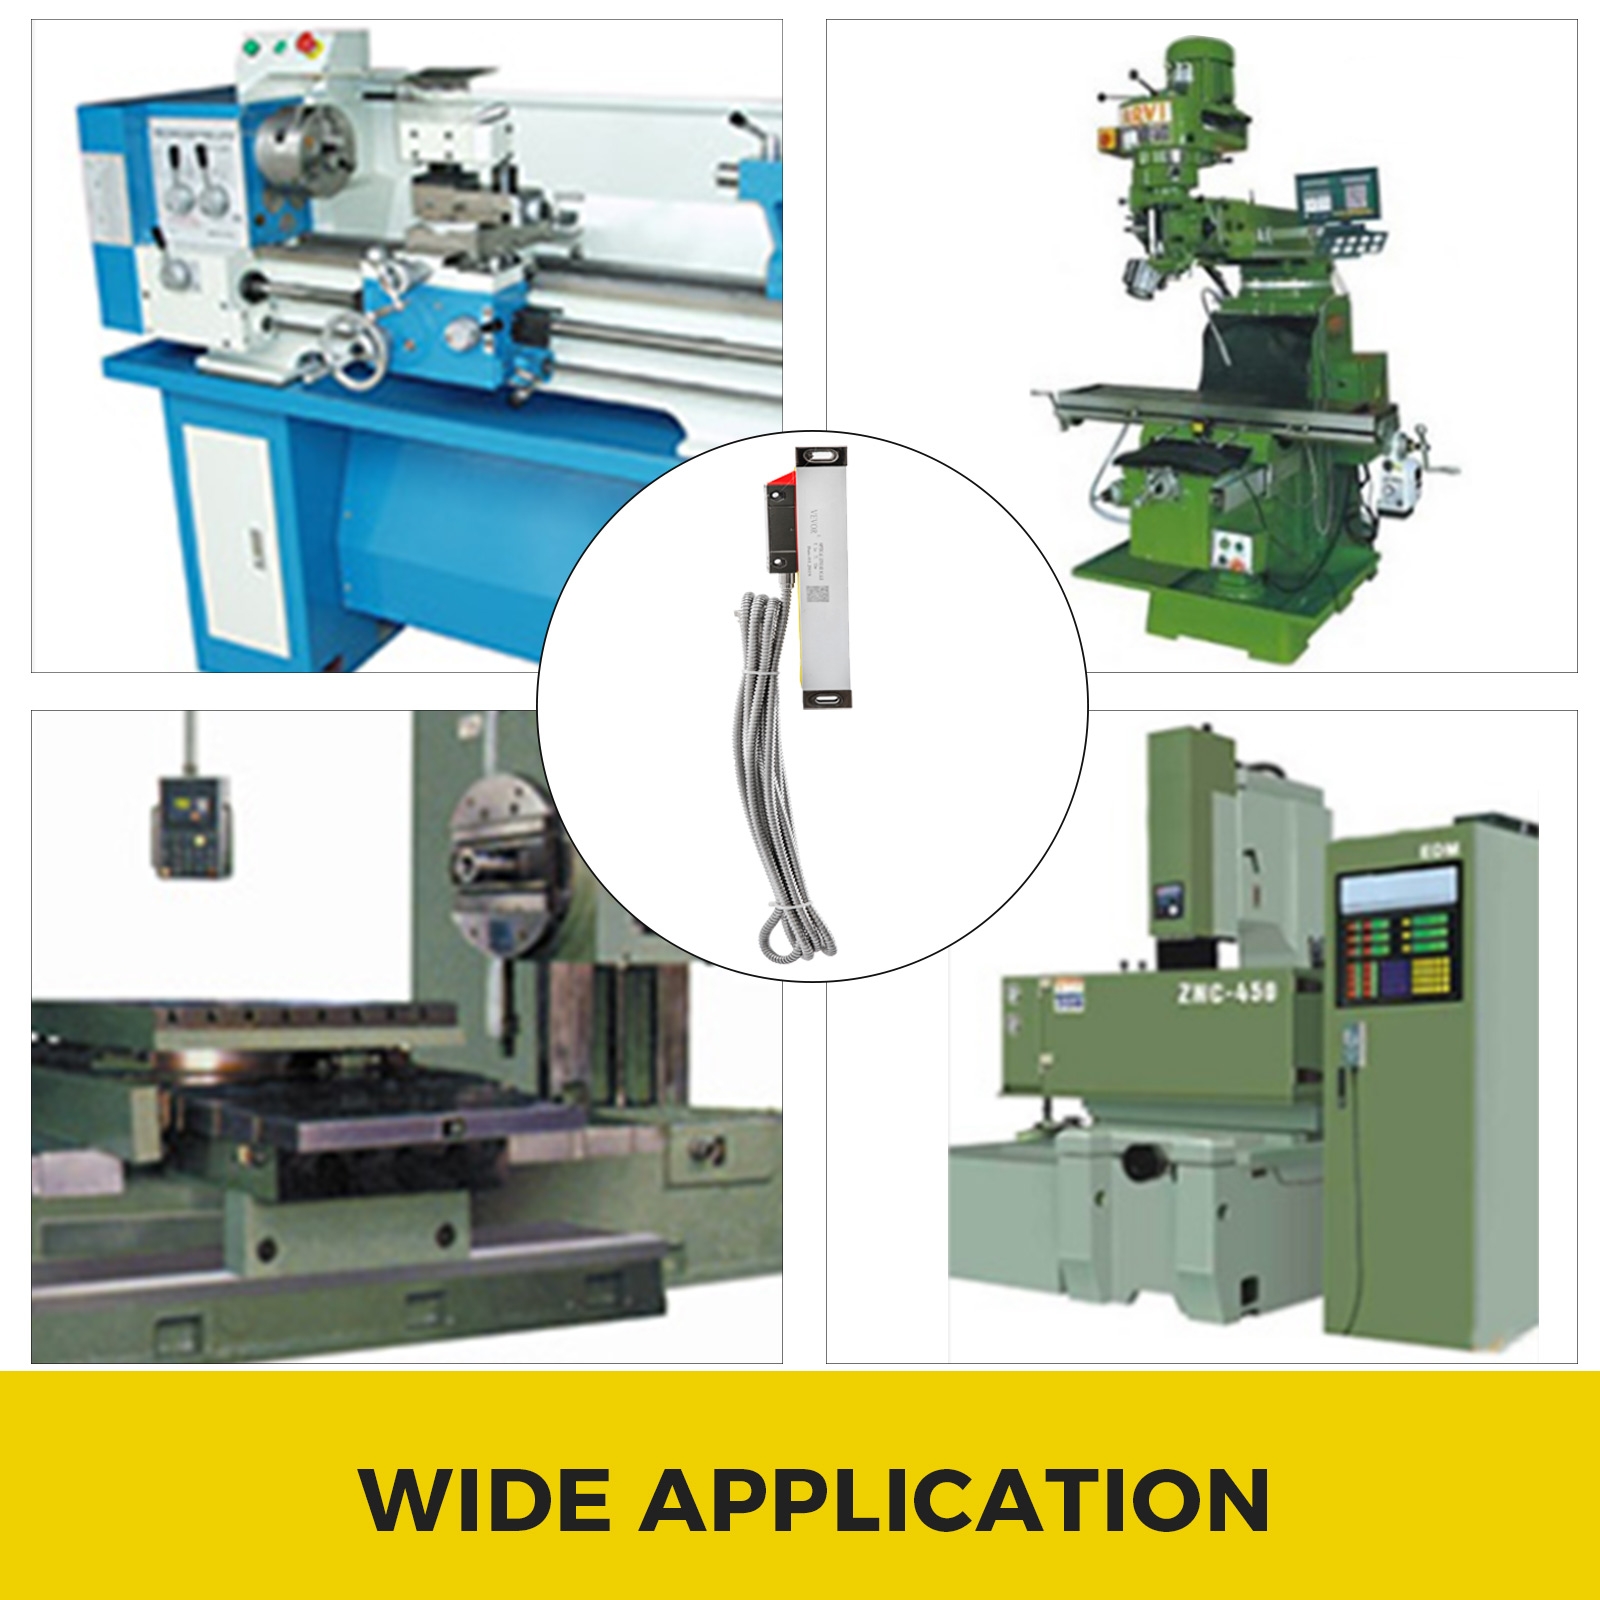 2-3-Axis-Digital-Readout-Linear-Scale-Double-Seal-5-Bearing-System-Grinding thumbnail 31